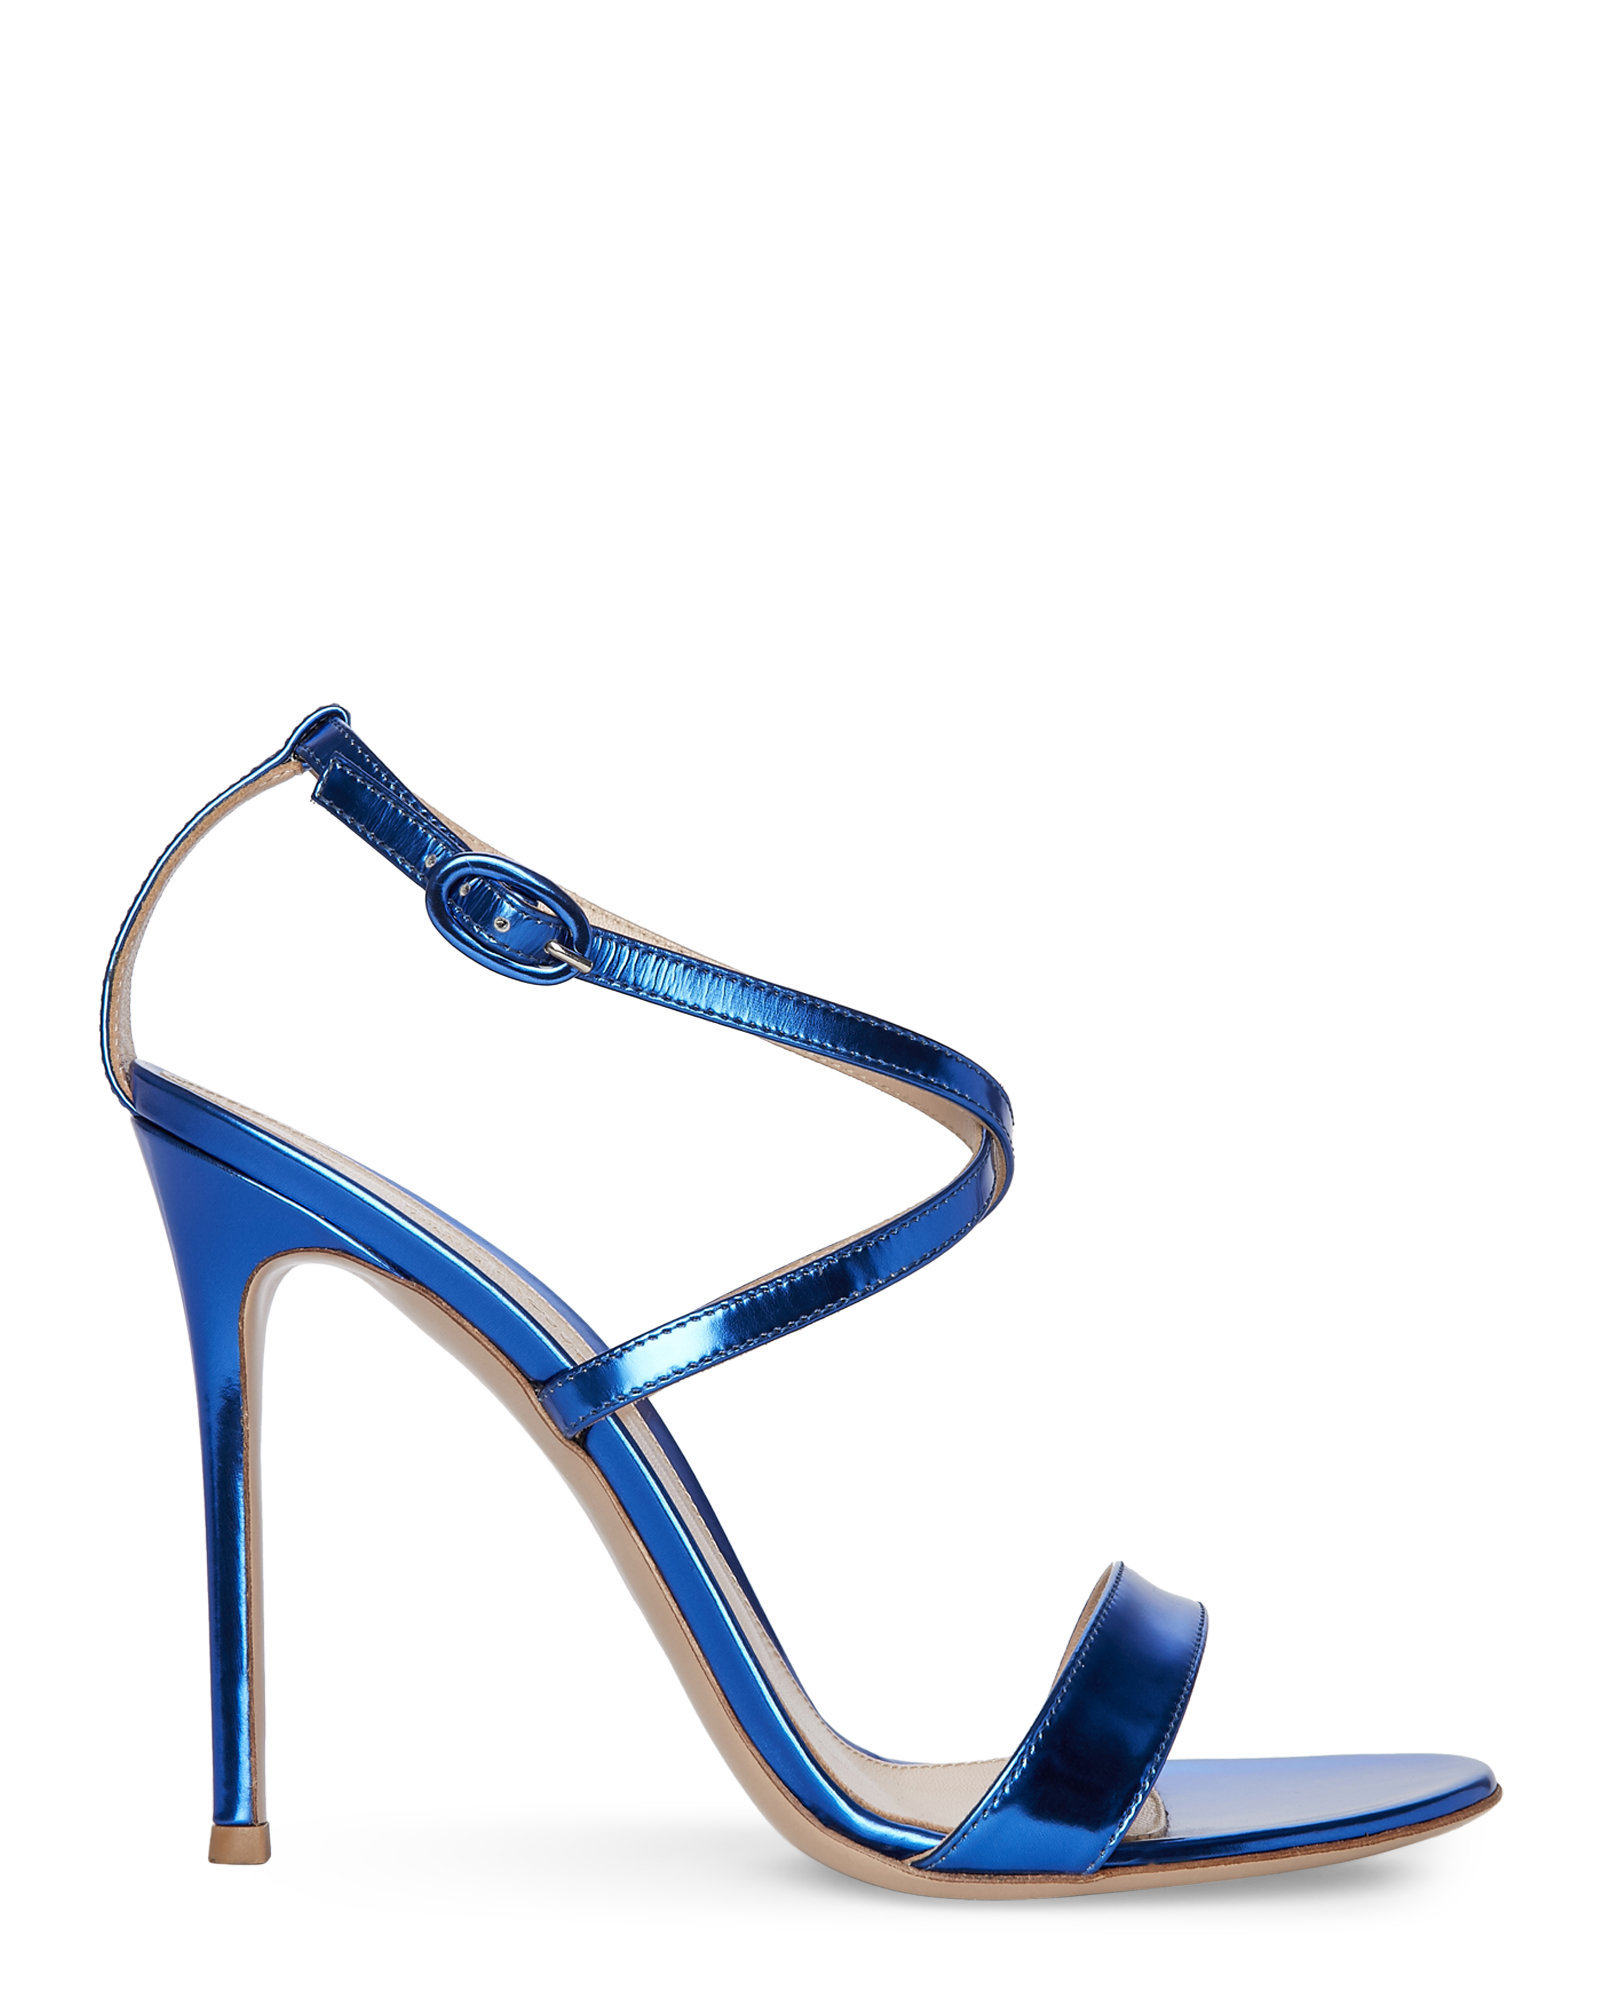 Gianvito rossi Metallic Cobalt Strappy Sandals in Blue | Lyst